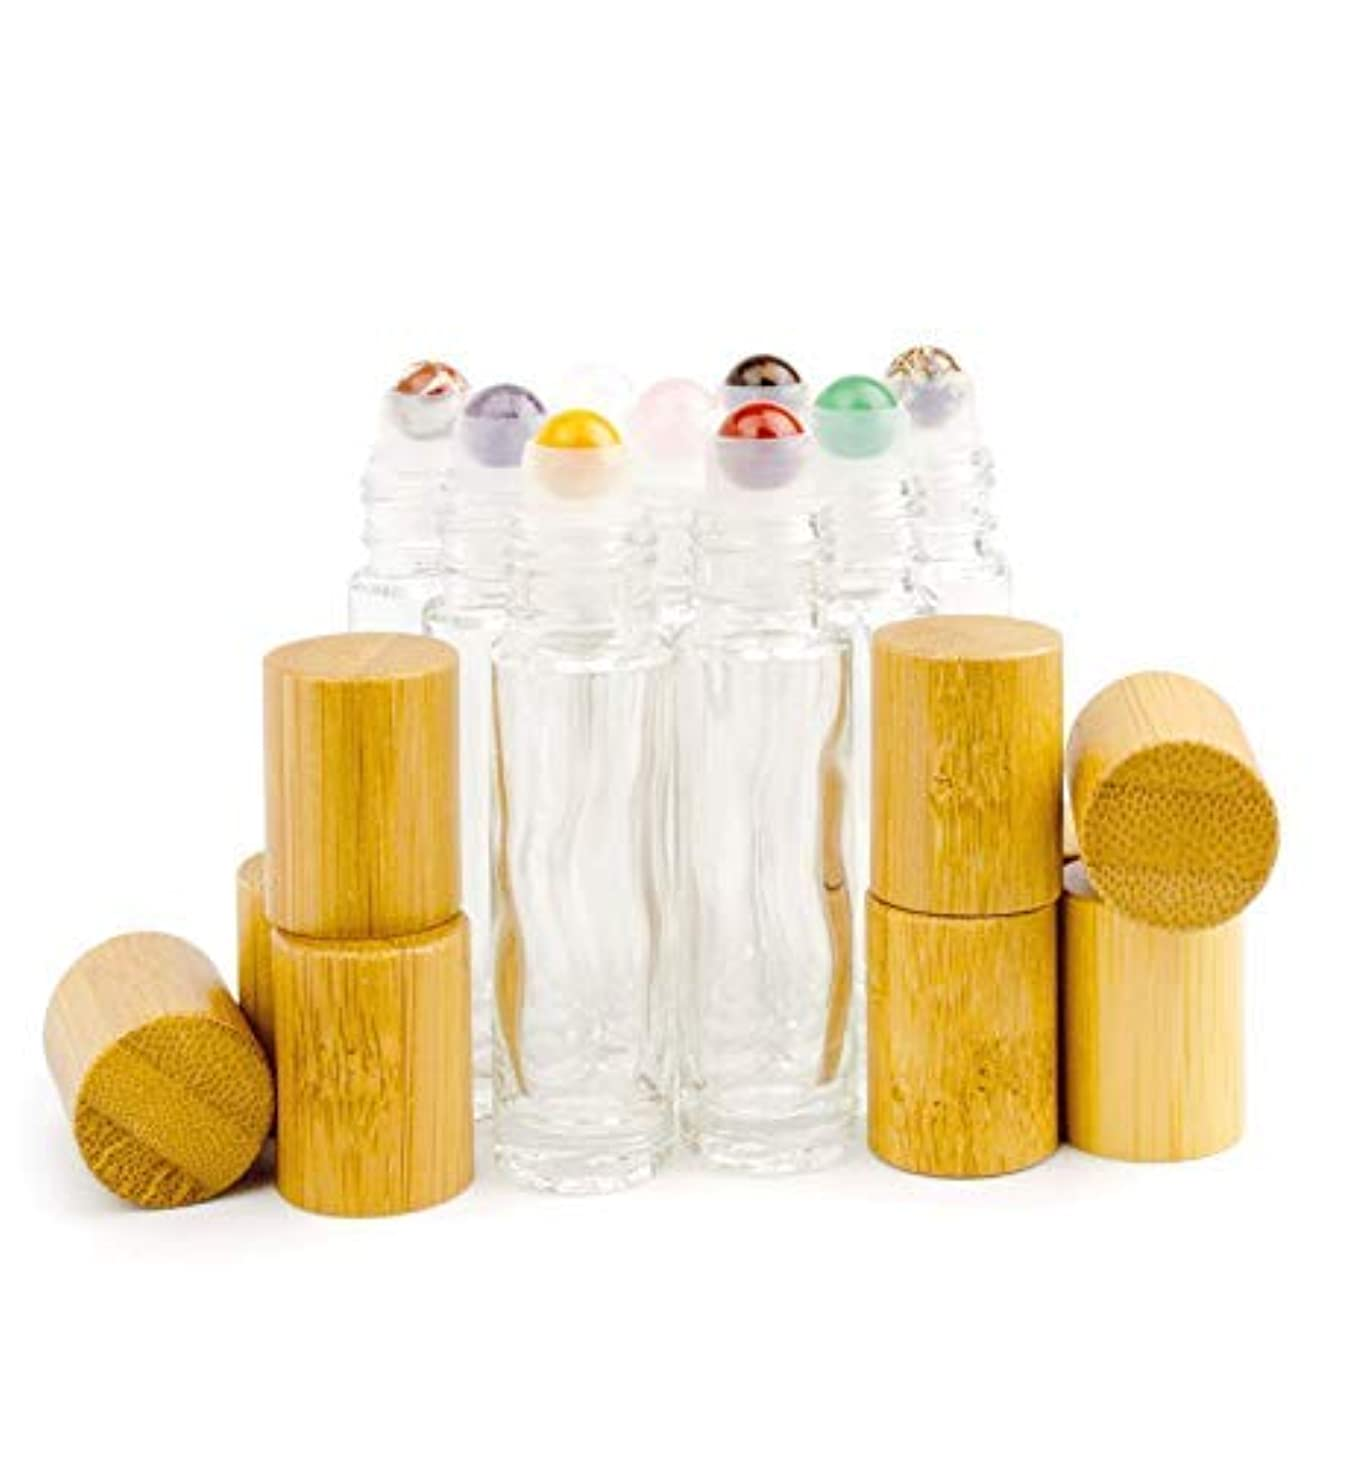 先行するスコットランド人苦しみGrand Parfums 9 Gemstone Crystal Roller Tops in 10ml Clear Glass Bottles, with Natural Bamboo Caps for Essential...